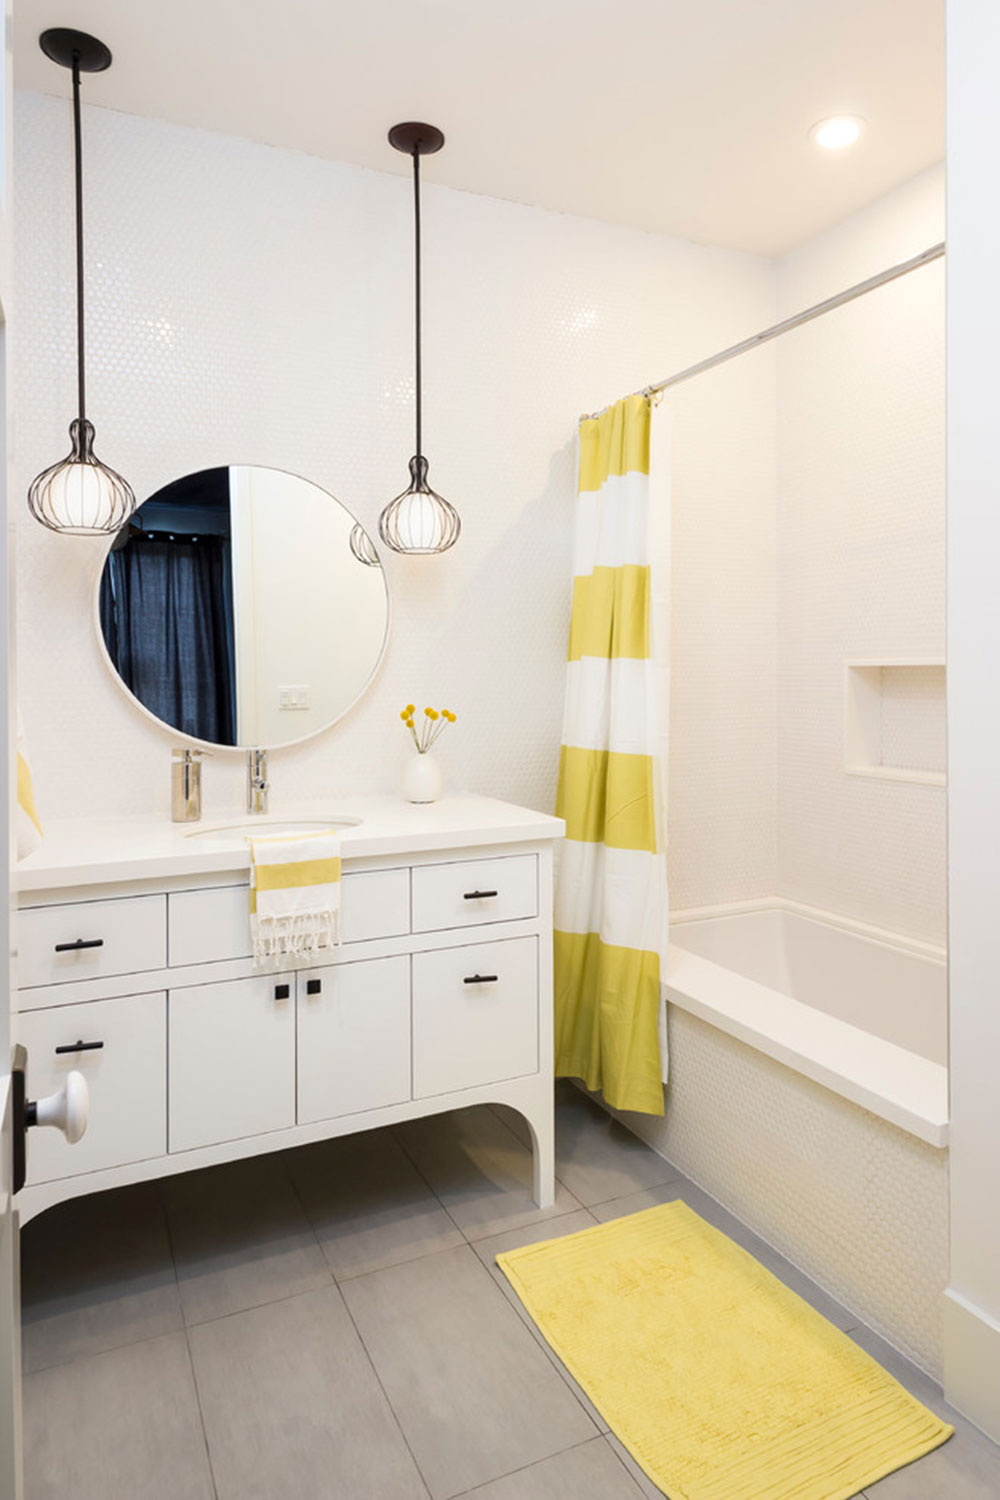 Enhance Your Bathroom Appearance With Trendy Shower Curtains 9 Trendy Shower Curtains For Your Bathroom